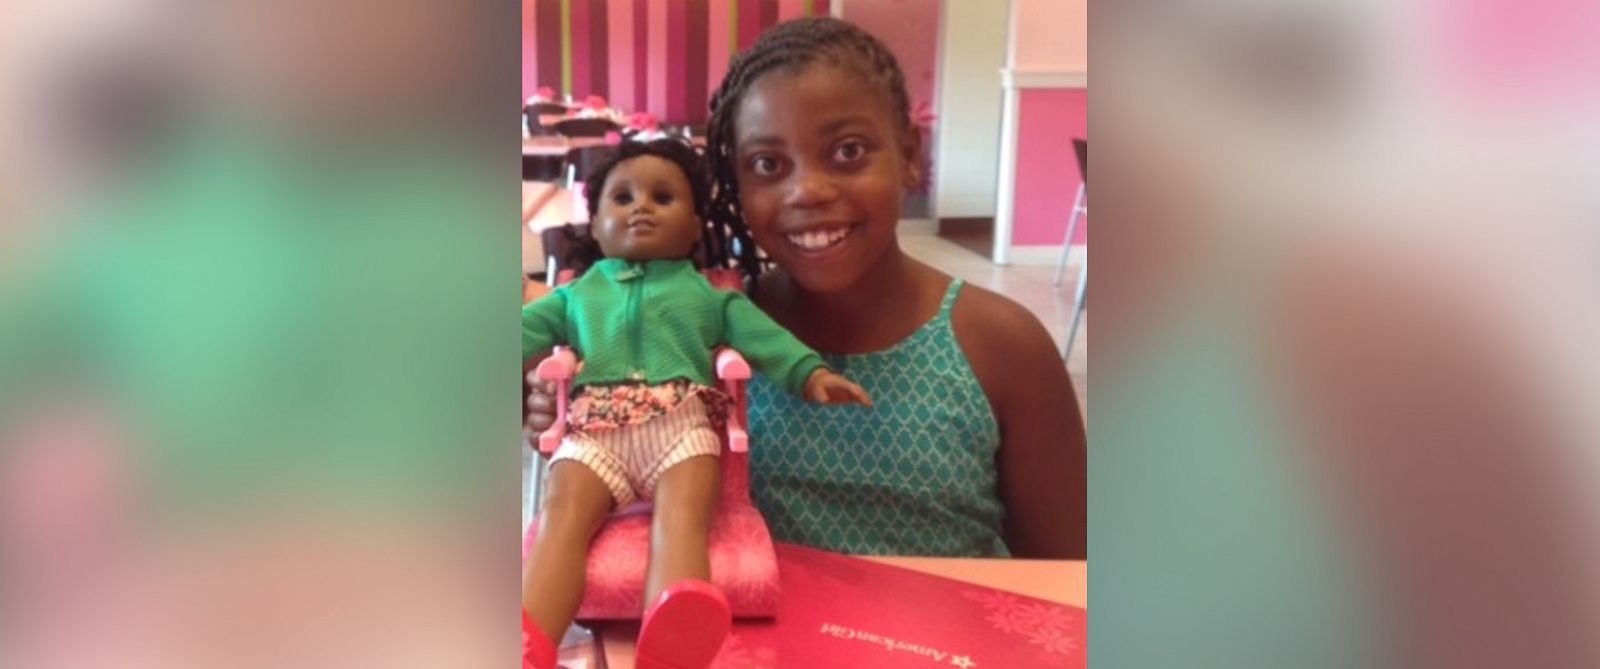 PHOTO: Lamaya Sakales, 10, has started a petition on Change.org asking her favorite doll company, American Girl, to make a doll that looks just like her.